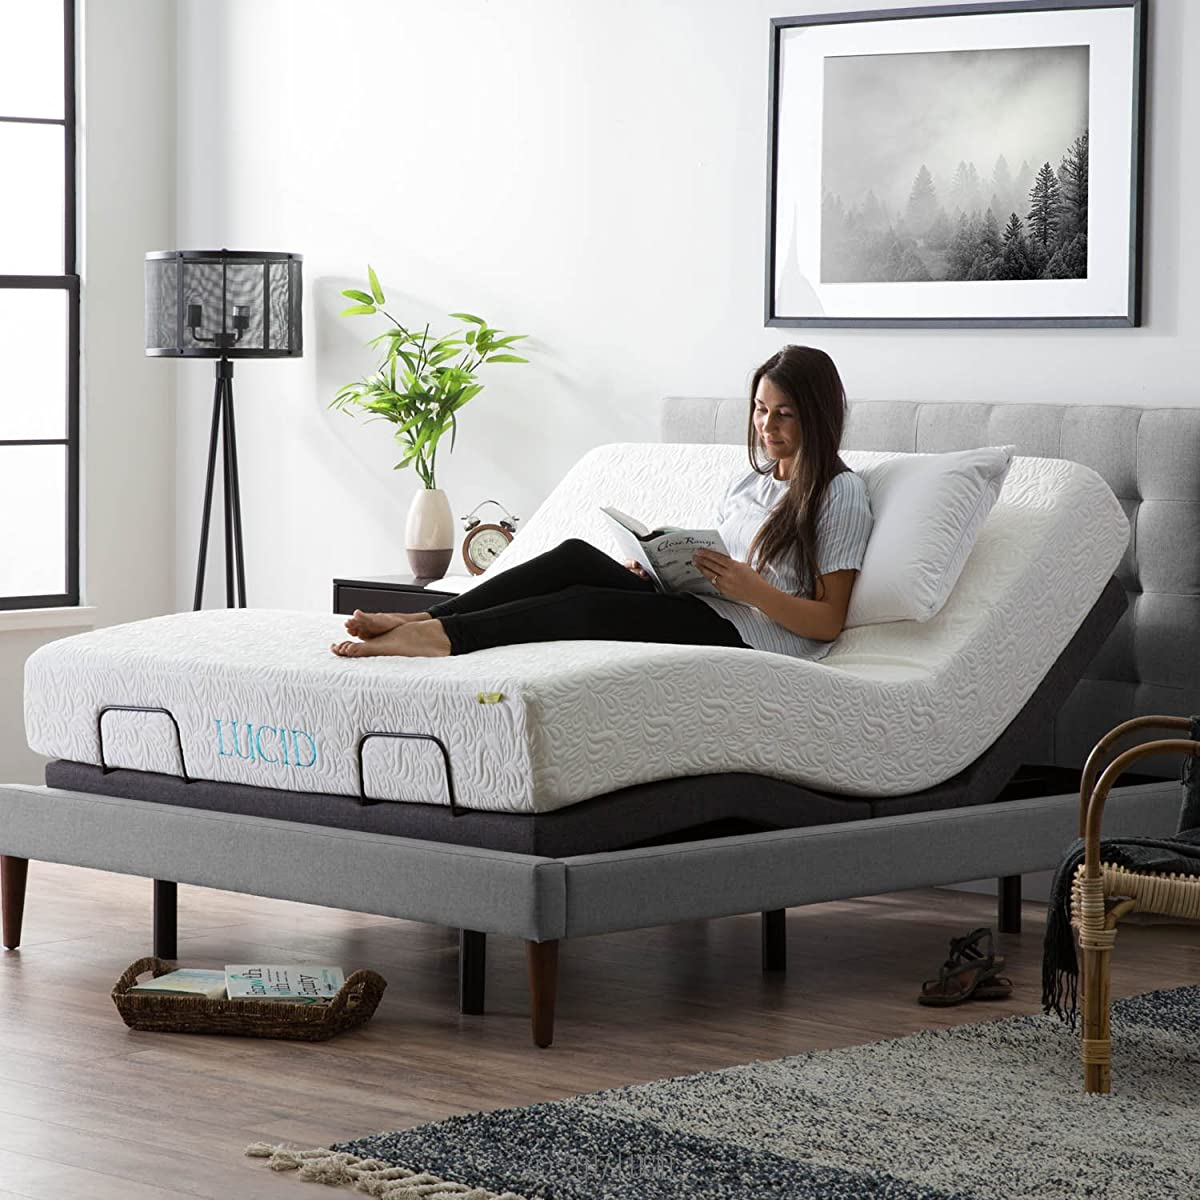 LUCID L300 Adjustable Bed Base - 5 Minute Assembly - Dual USB Charging Stations - Head and Foot Incline - Wireless Remote Control - Upholstered - Ergonomic - Queen - Charcoal